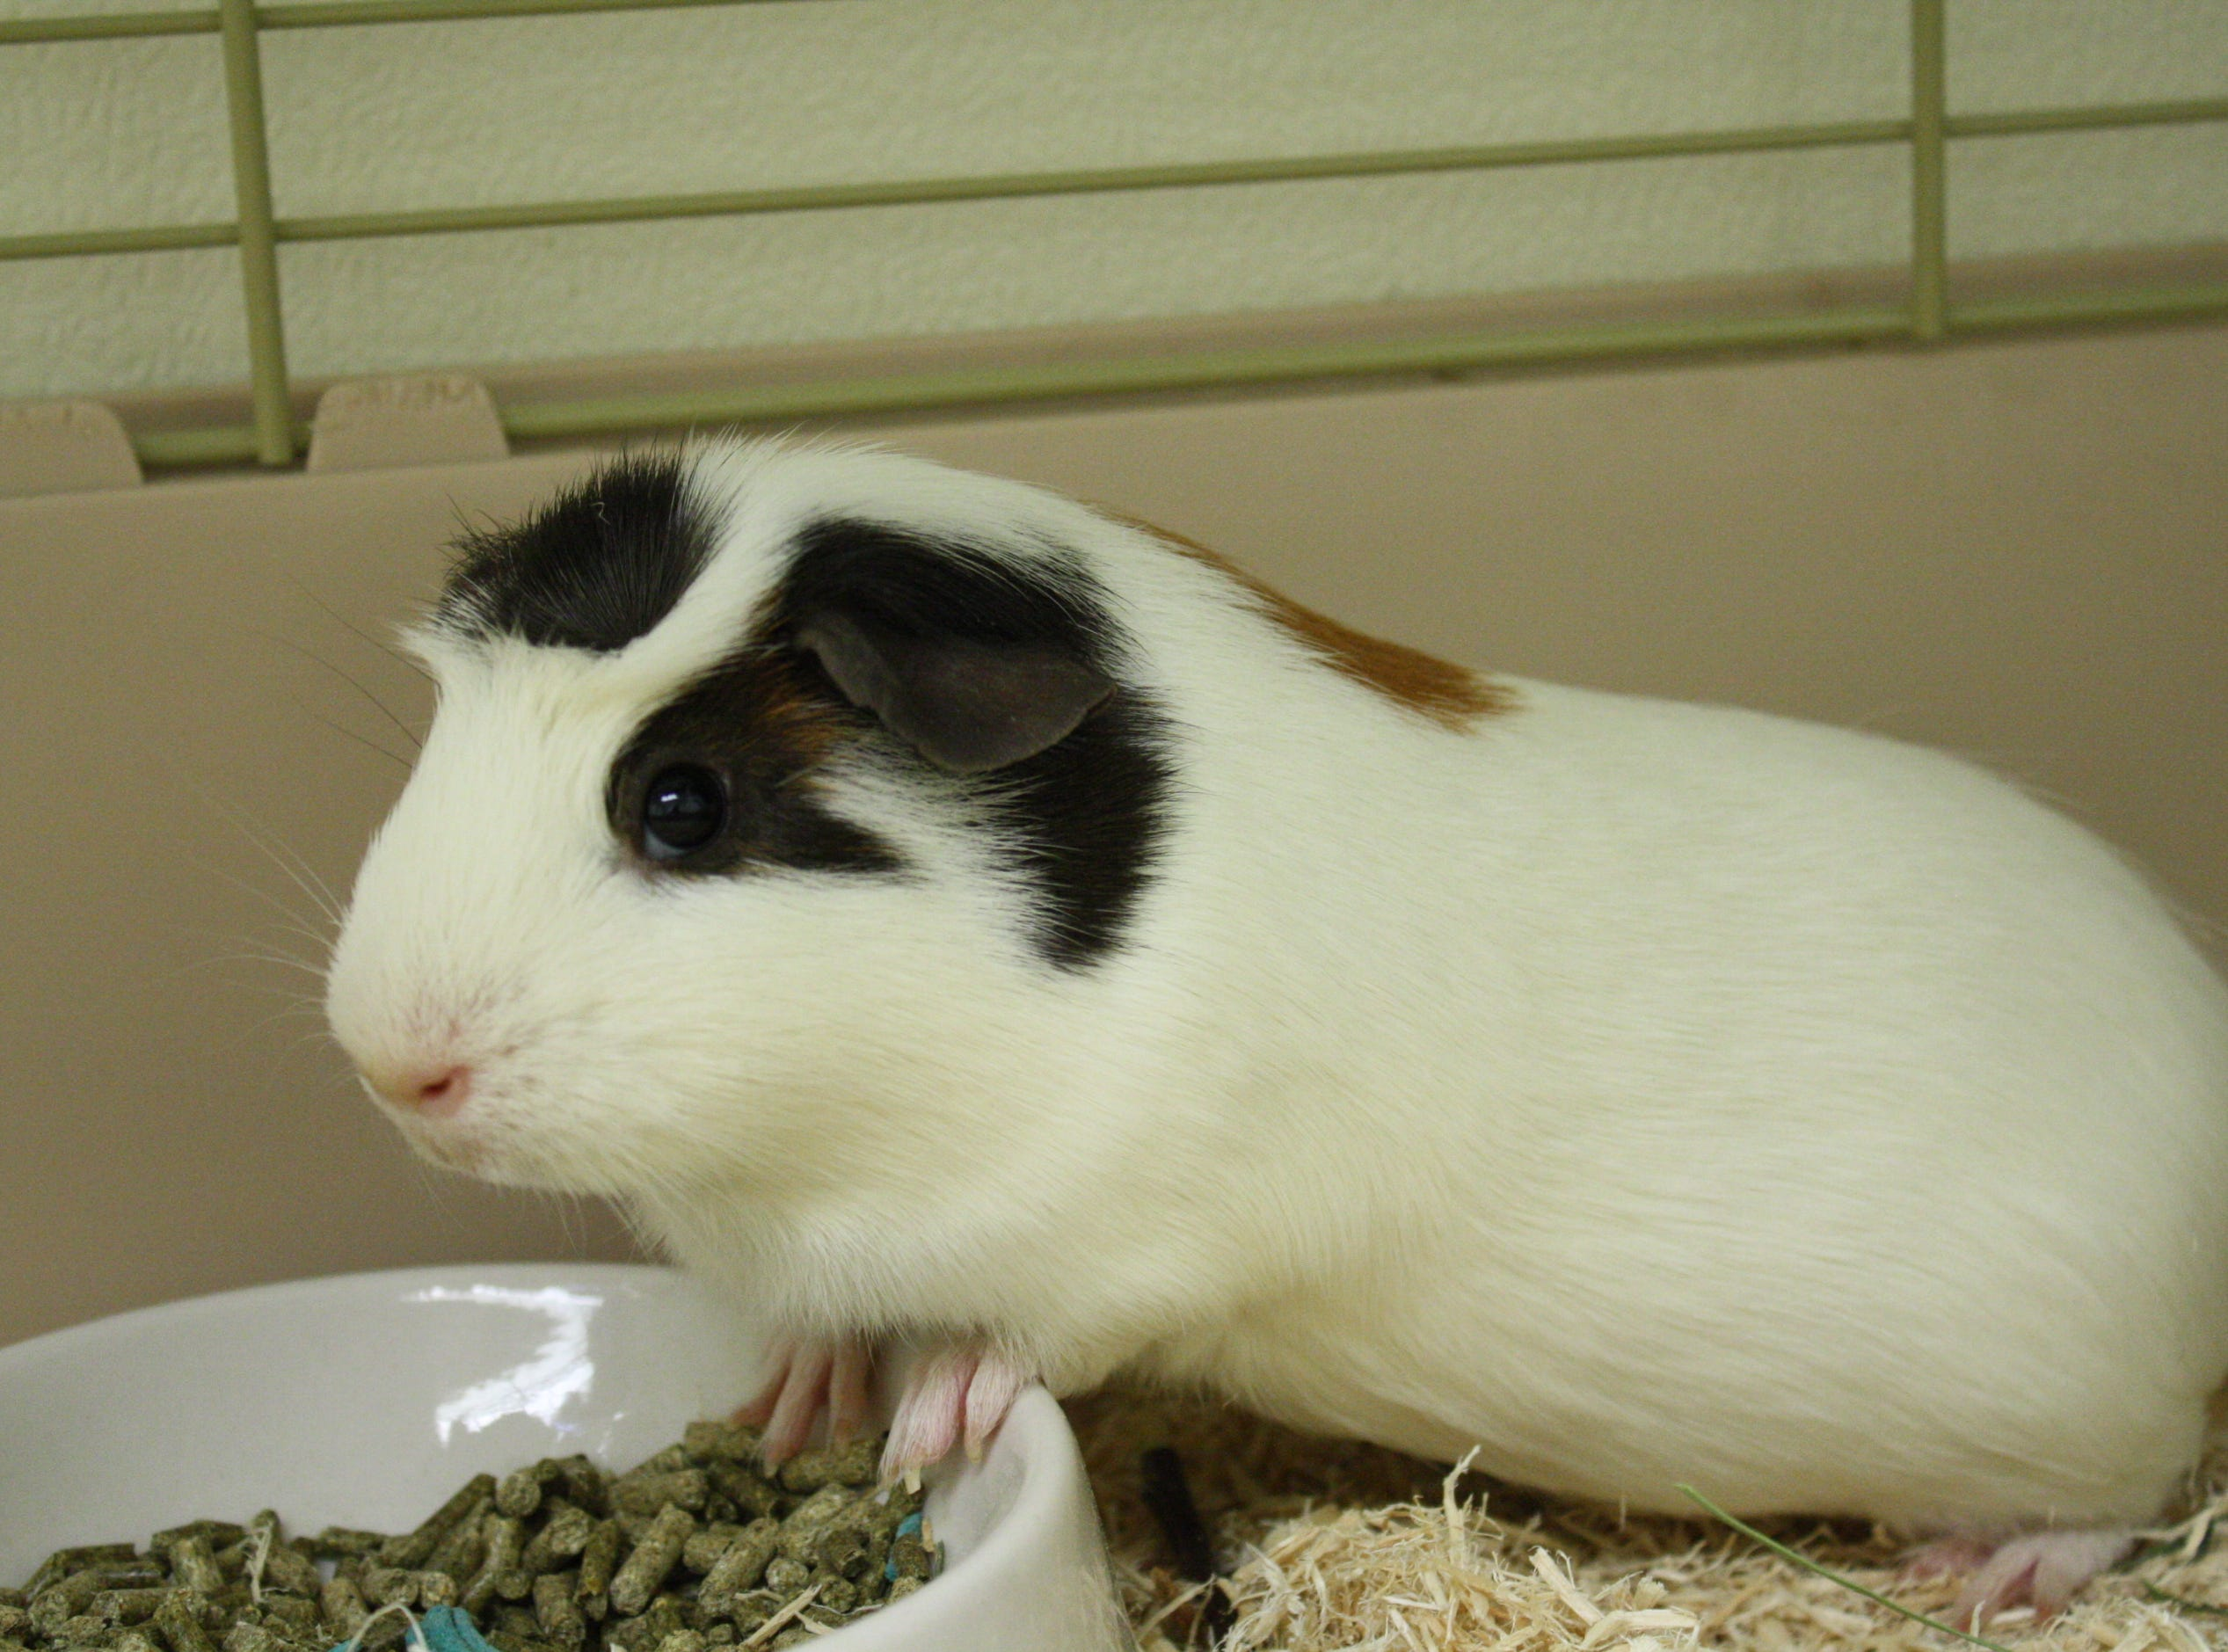 Nugget, a 10-month-old Guinea Pig, is shy and sweet and would love a home with a buddy.